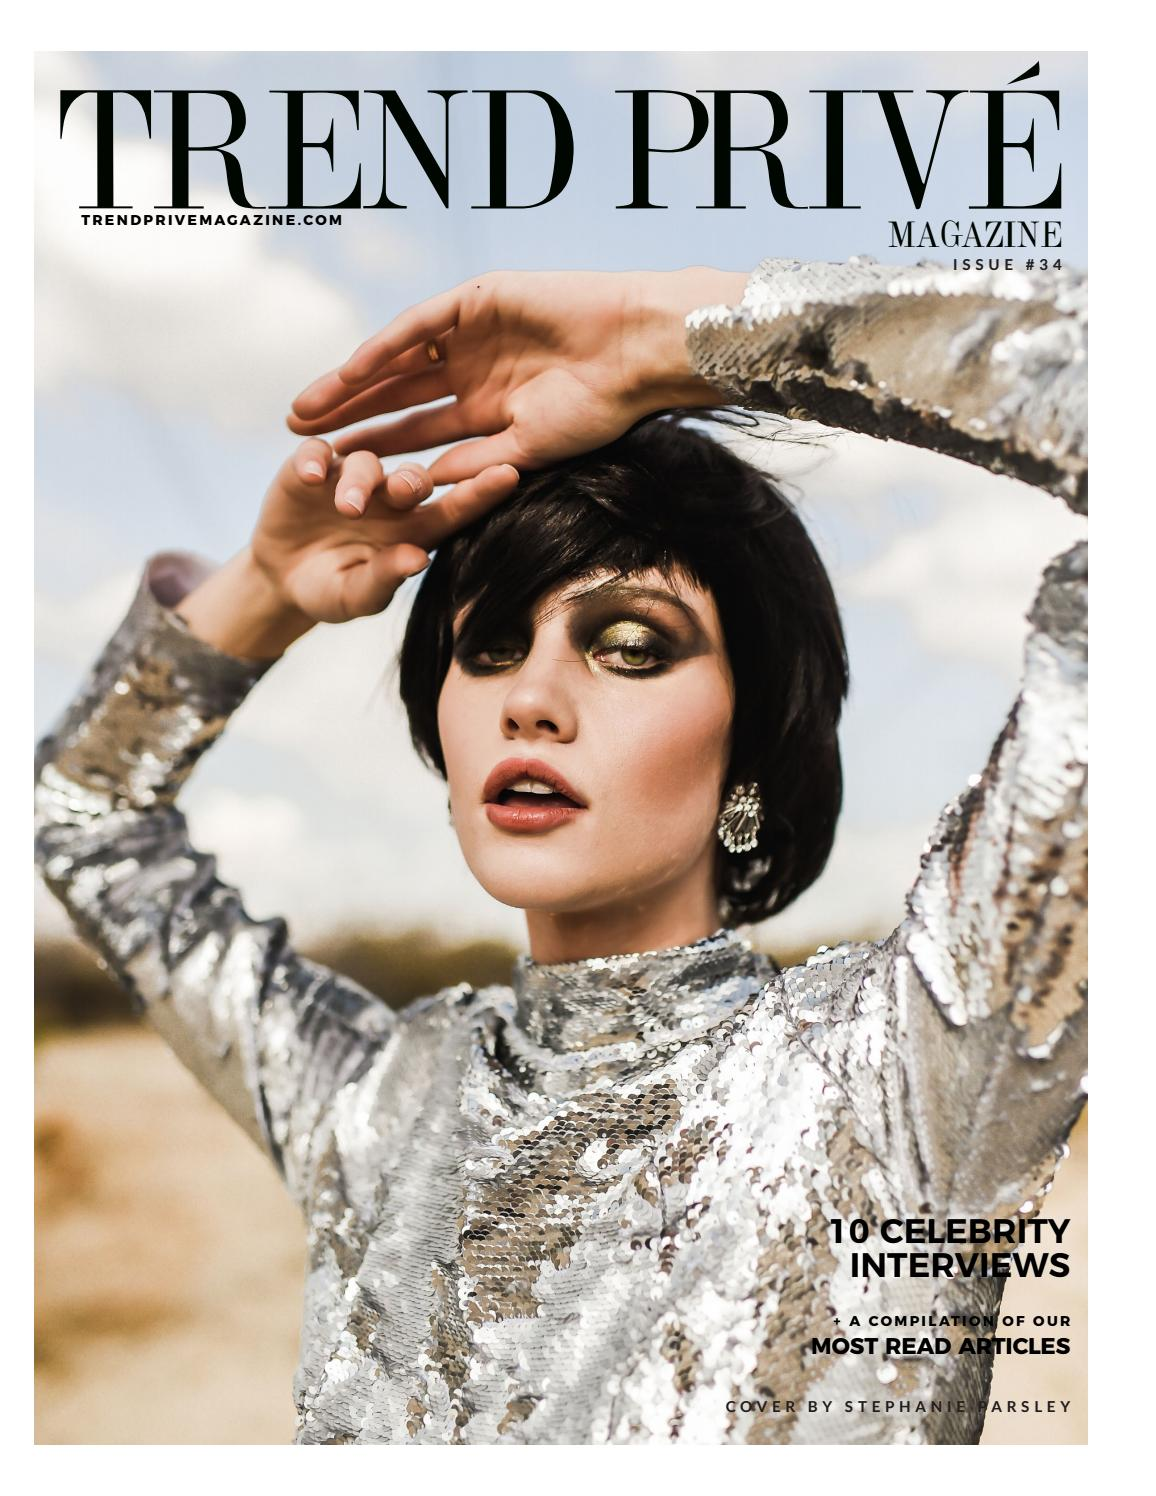 Trend Prive Magazine Issue 34 By Trend Prive Magazine Issuu